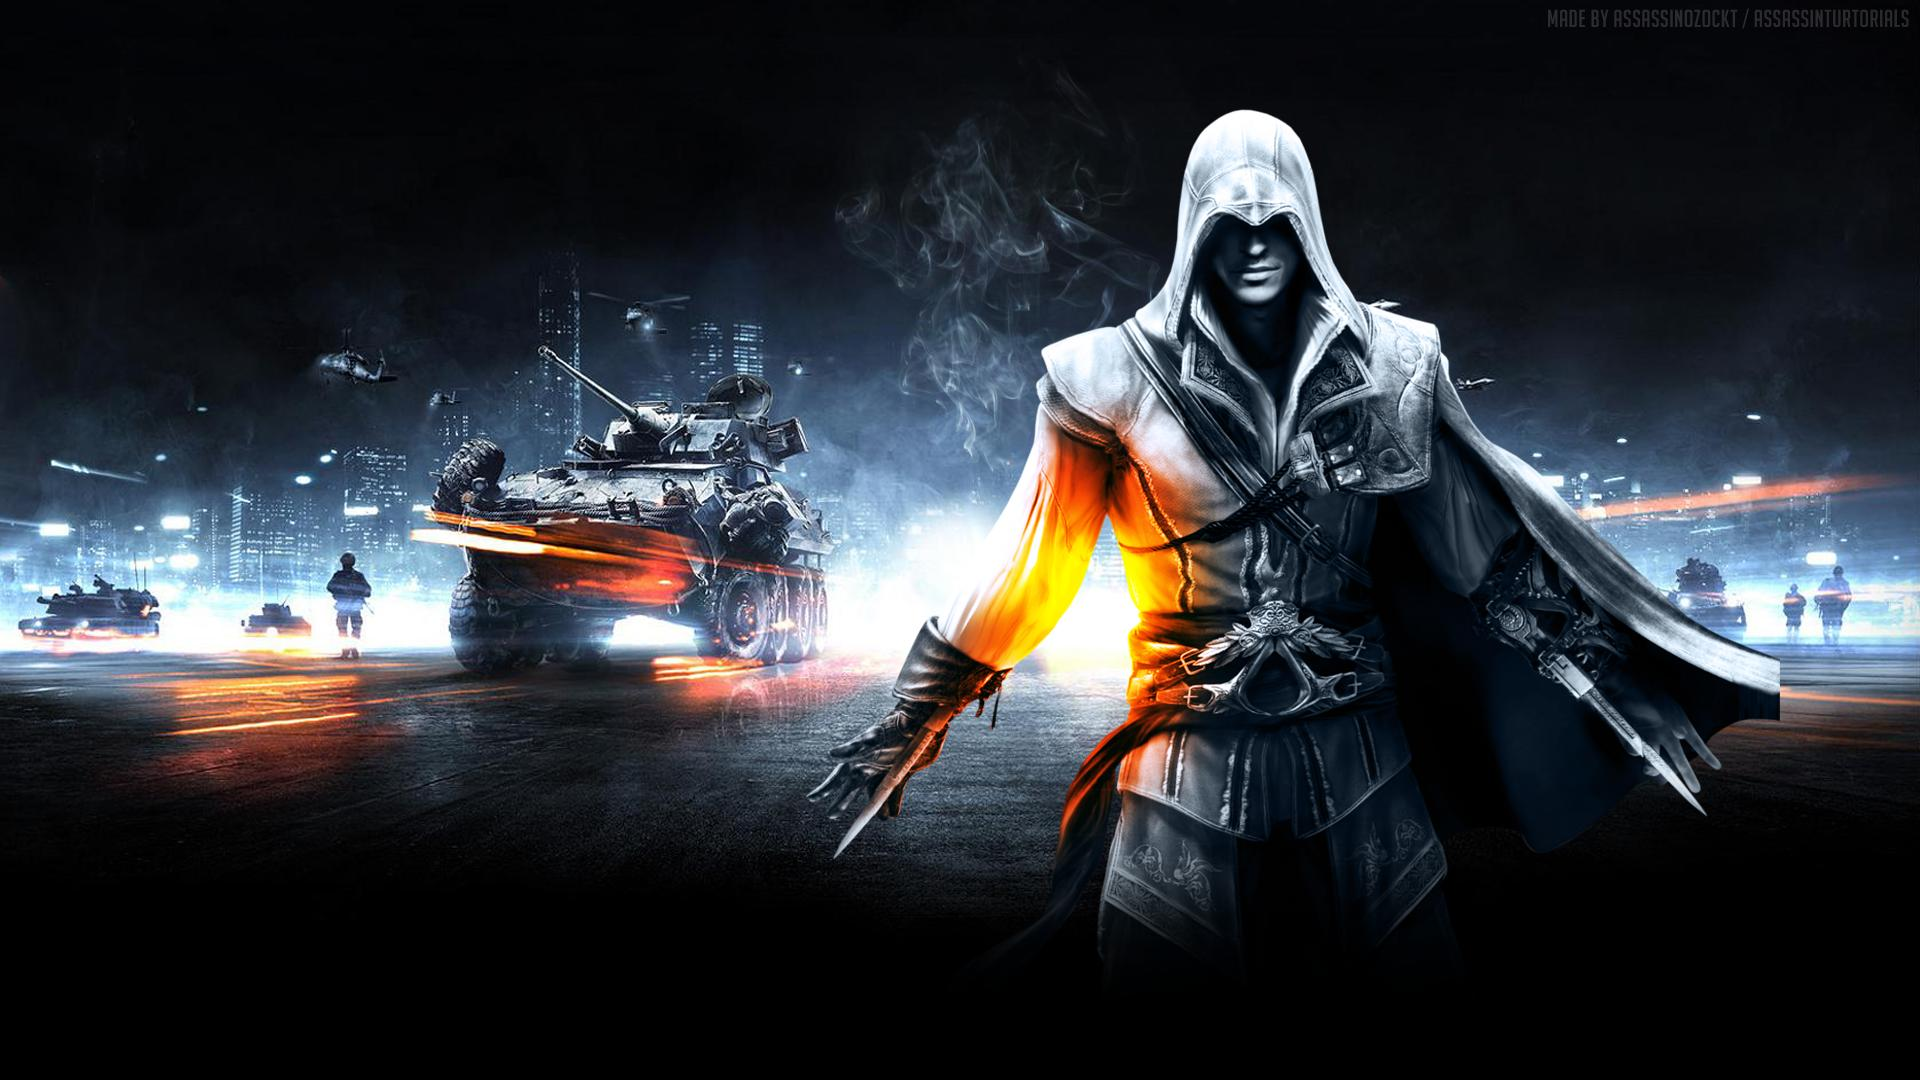 Cool Games Wallpapers Wallpaper Cave 925983 Png Images